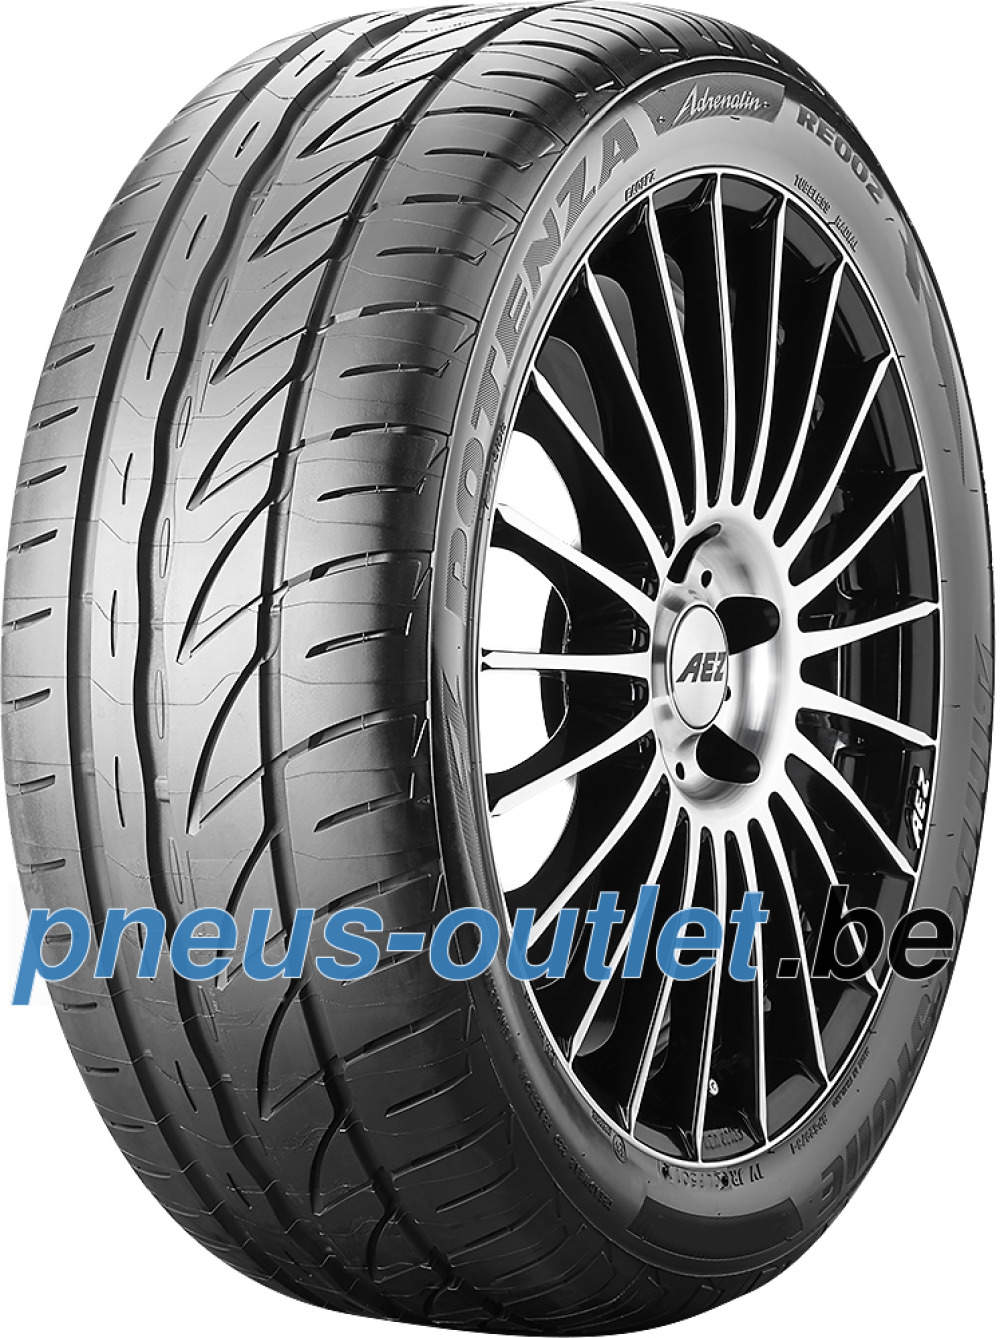 Bridgestone Potenza Adrenalin RE002 ( 245/40 R18 97W XL )